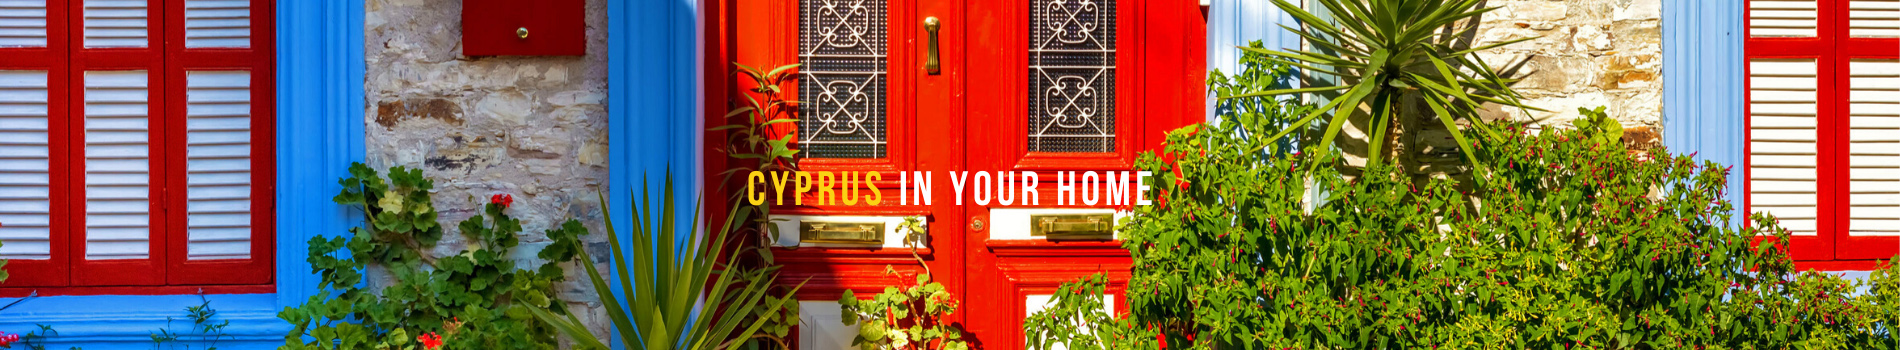 VisitCyprusFromHome